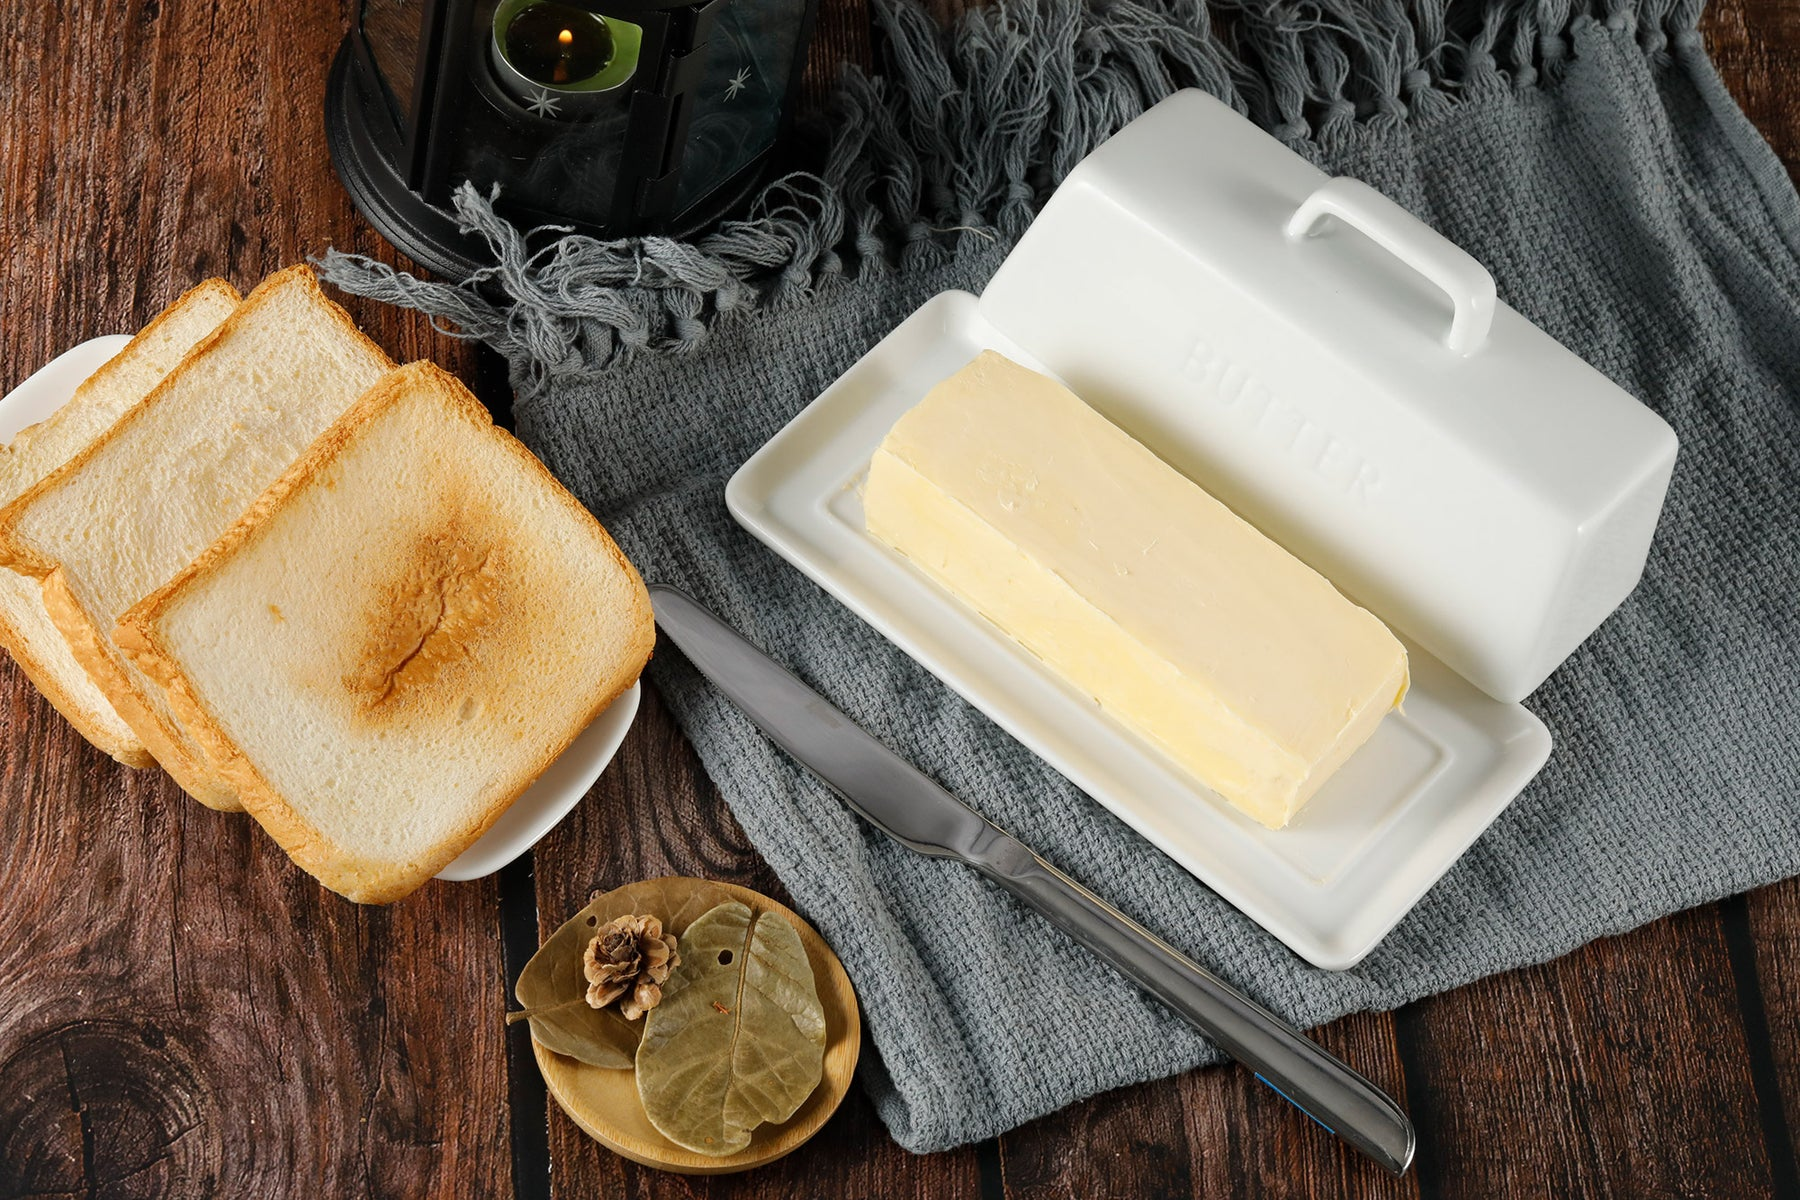 Butter Dish with Toast featured image